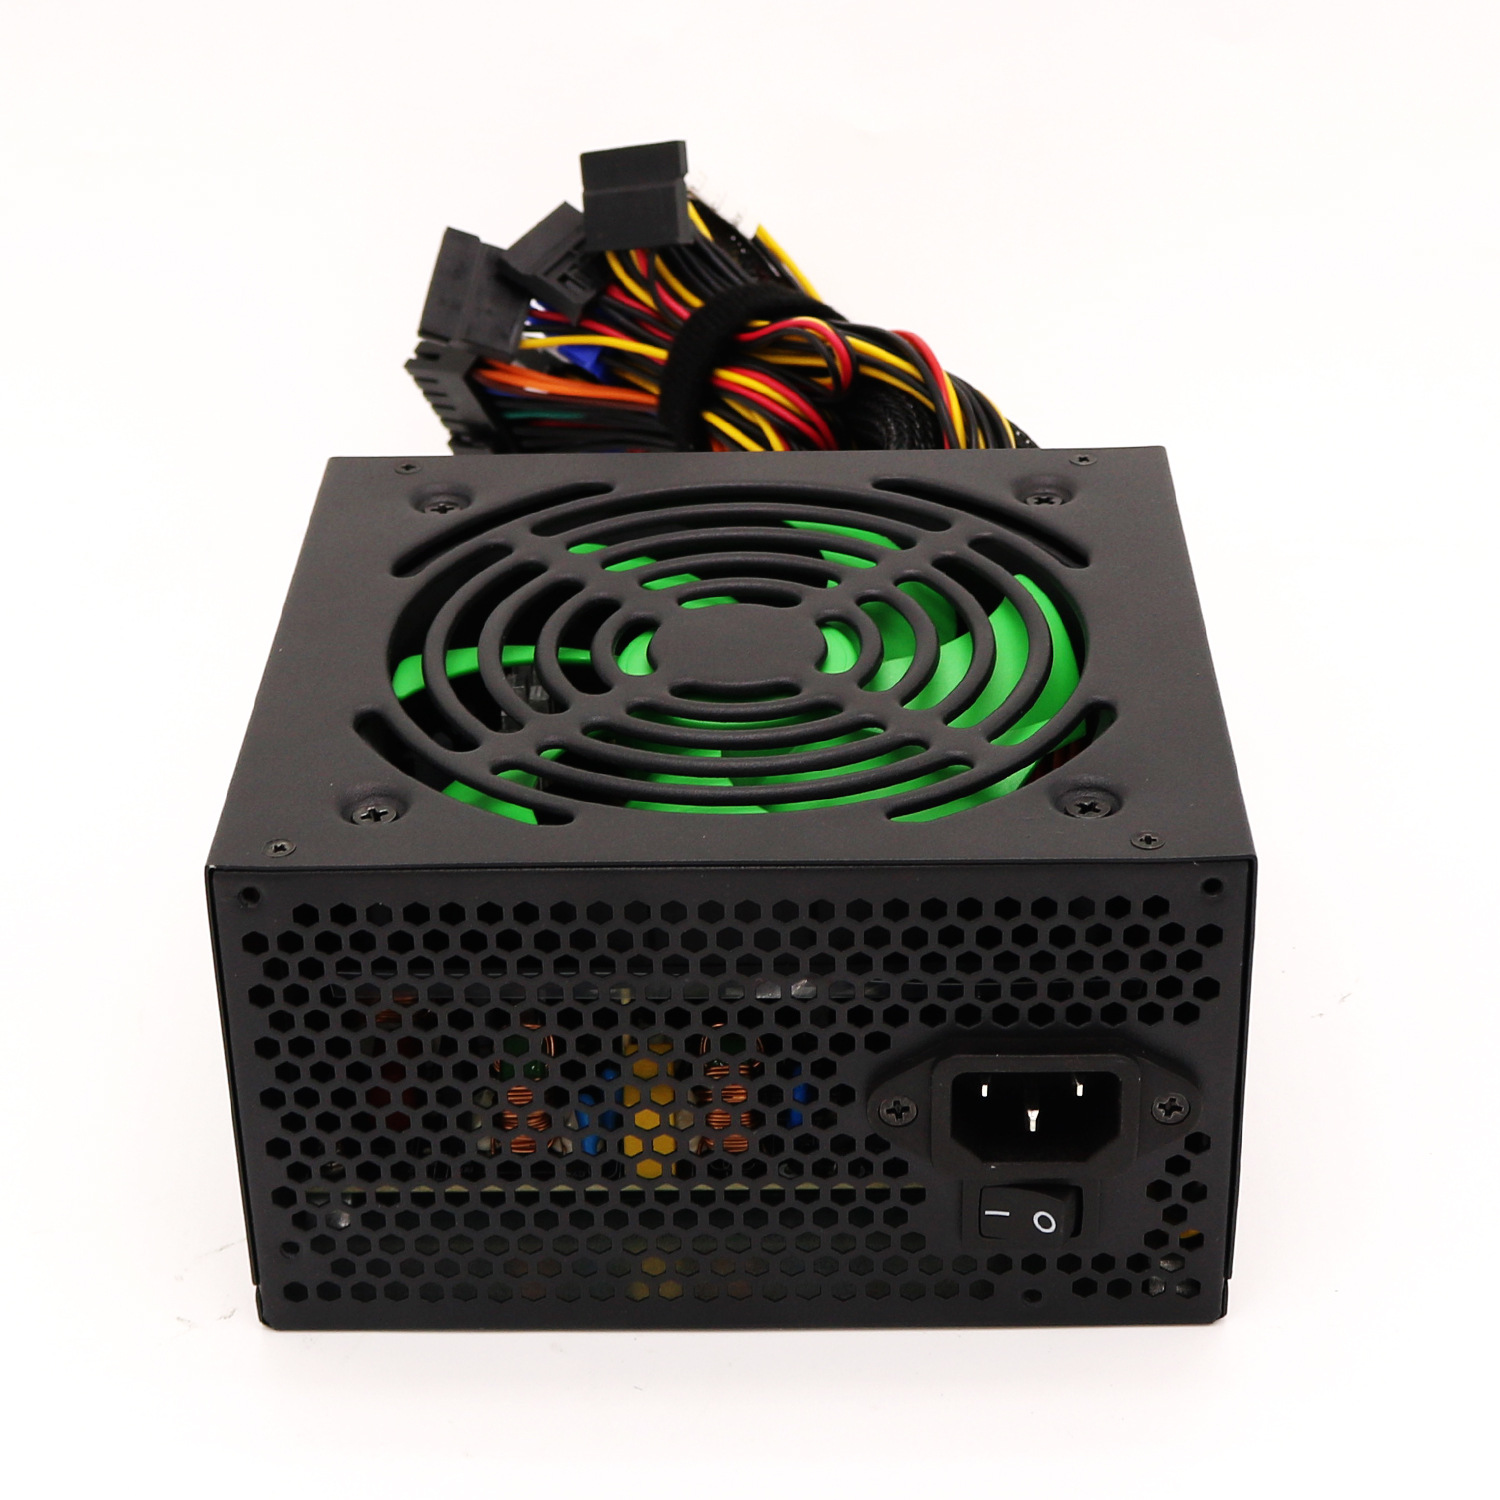 Low price manufacturer 200W 80plus full voltage ATX computer  power supply